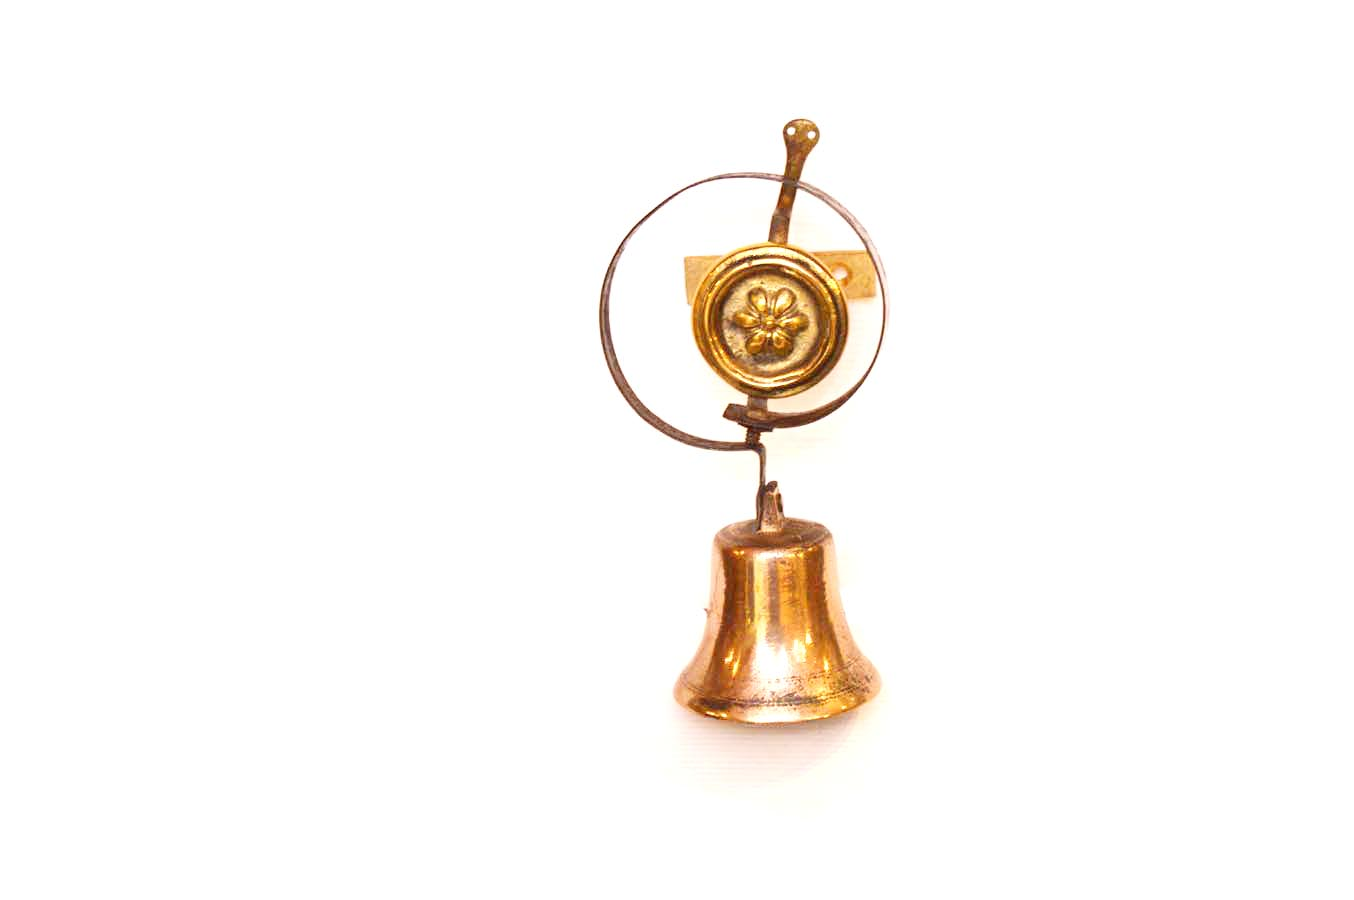 Lot 312 - An Old Brass and Metal Servants Bell